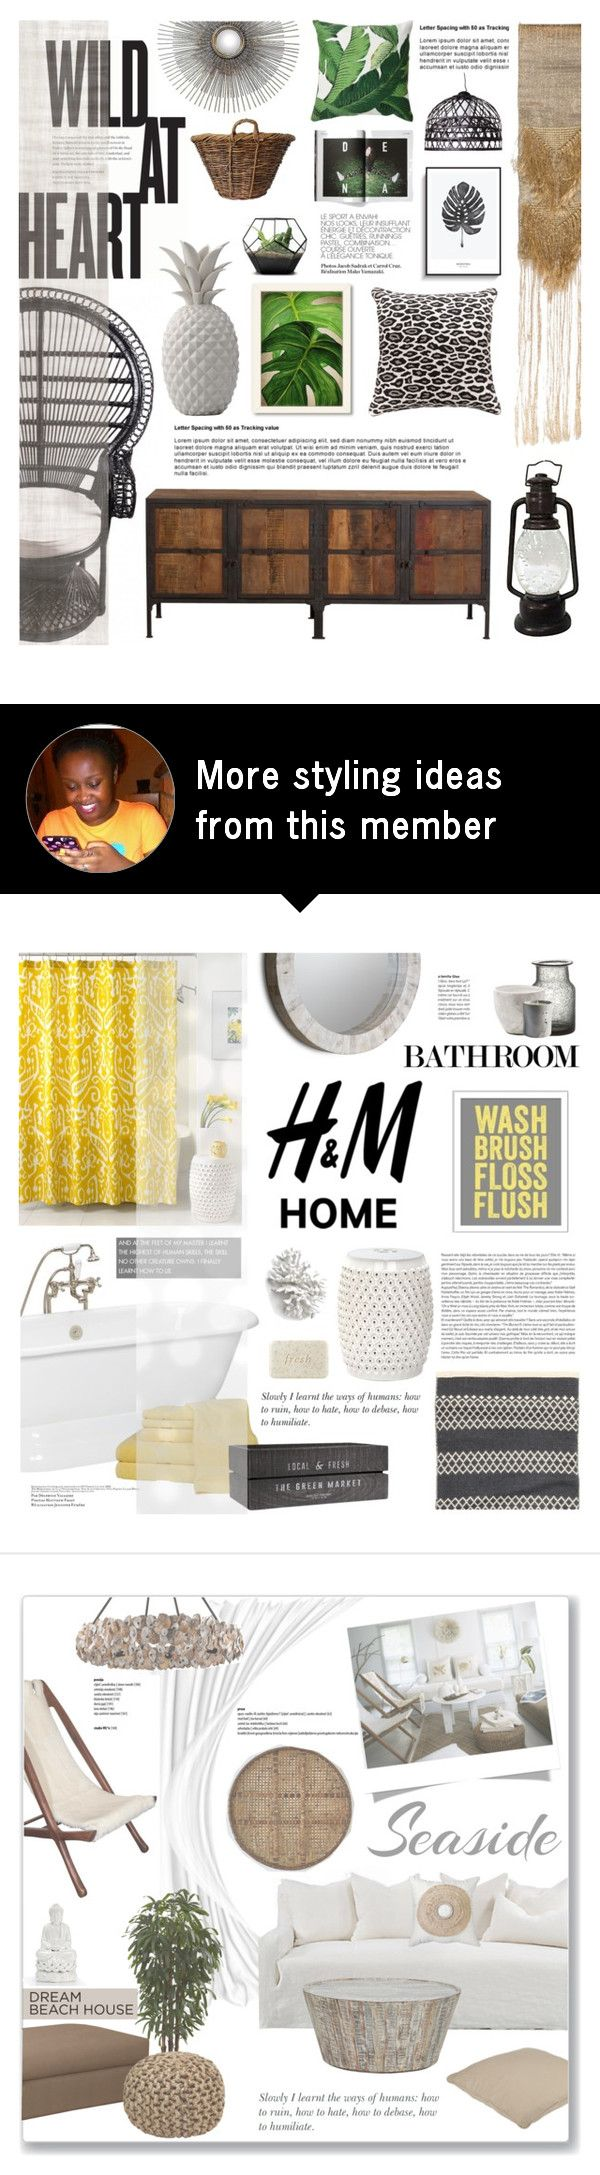 """Tropical Obsession"" by fyenksfiona on Polyvore featuring interior, interiors, interior design, home, home decor, interior decorating, Tantra, Dot & Bo, Carhartt and Creative Co-op"